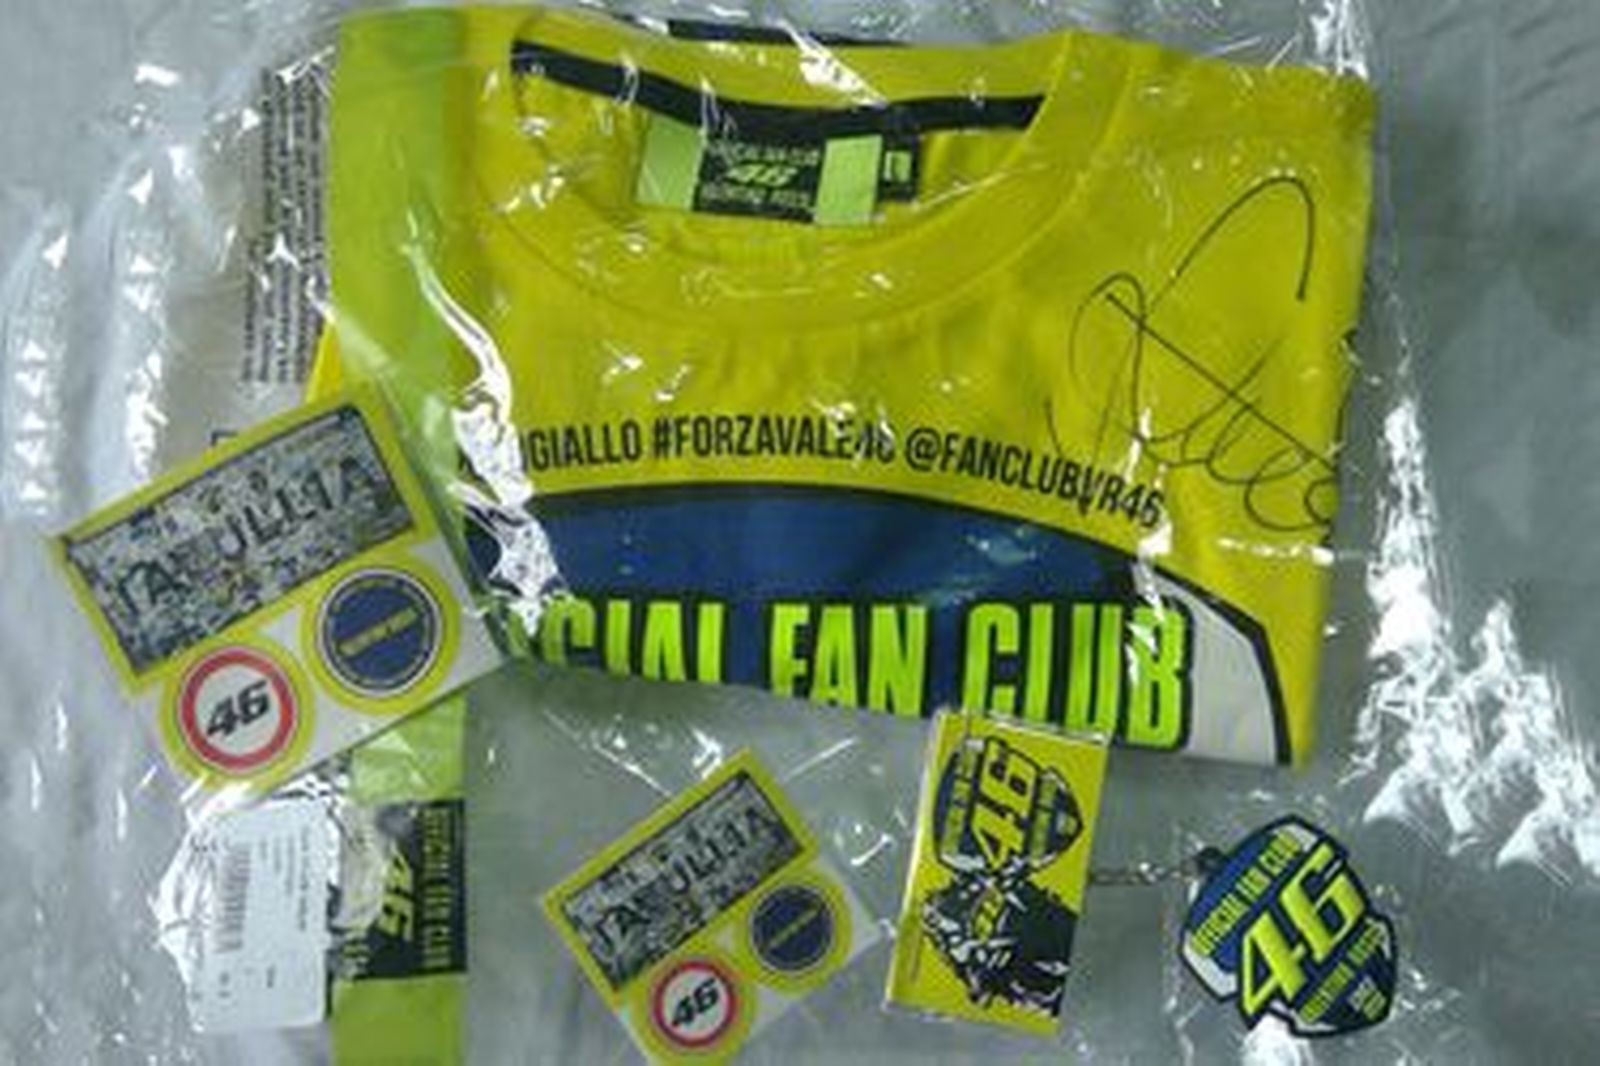 Valentino Rossi #46 Fan Club Pack  Signed